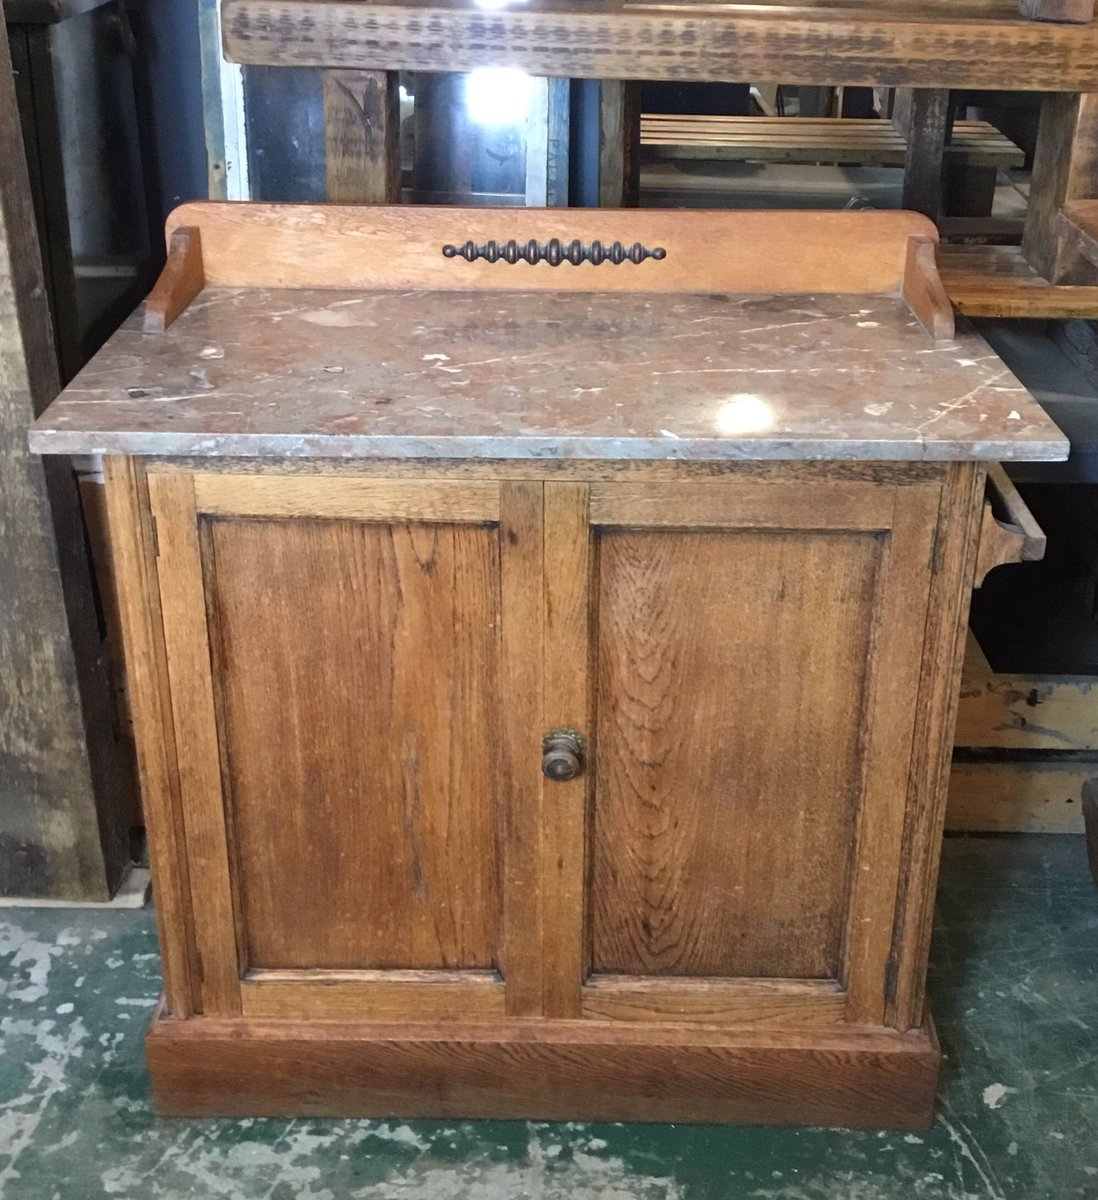 Lovely old Washstand now on our website.  Price inc. delivery. #vintagefurniture #countrystyle #countryhouse #antiques #oswestry #smallbusiness #independentbusiness